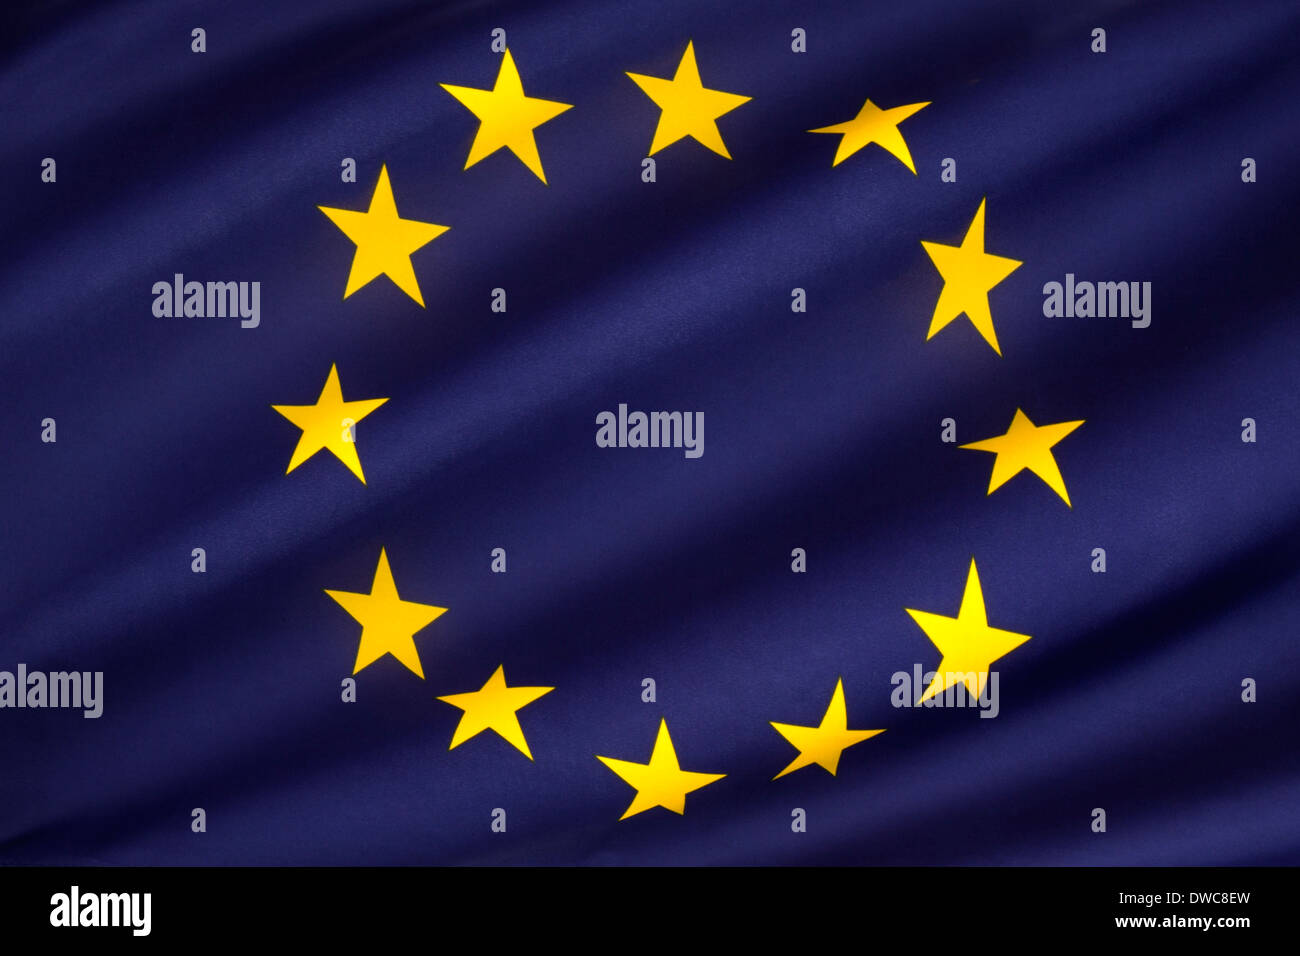 Flag of Europe - European Flag - Stock Image